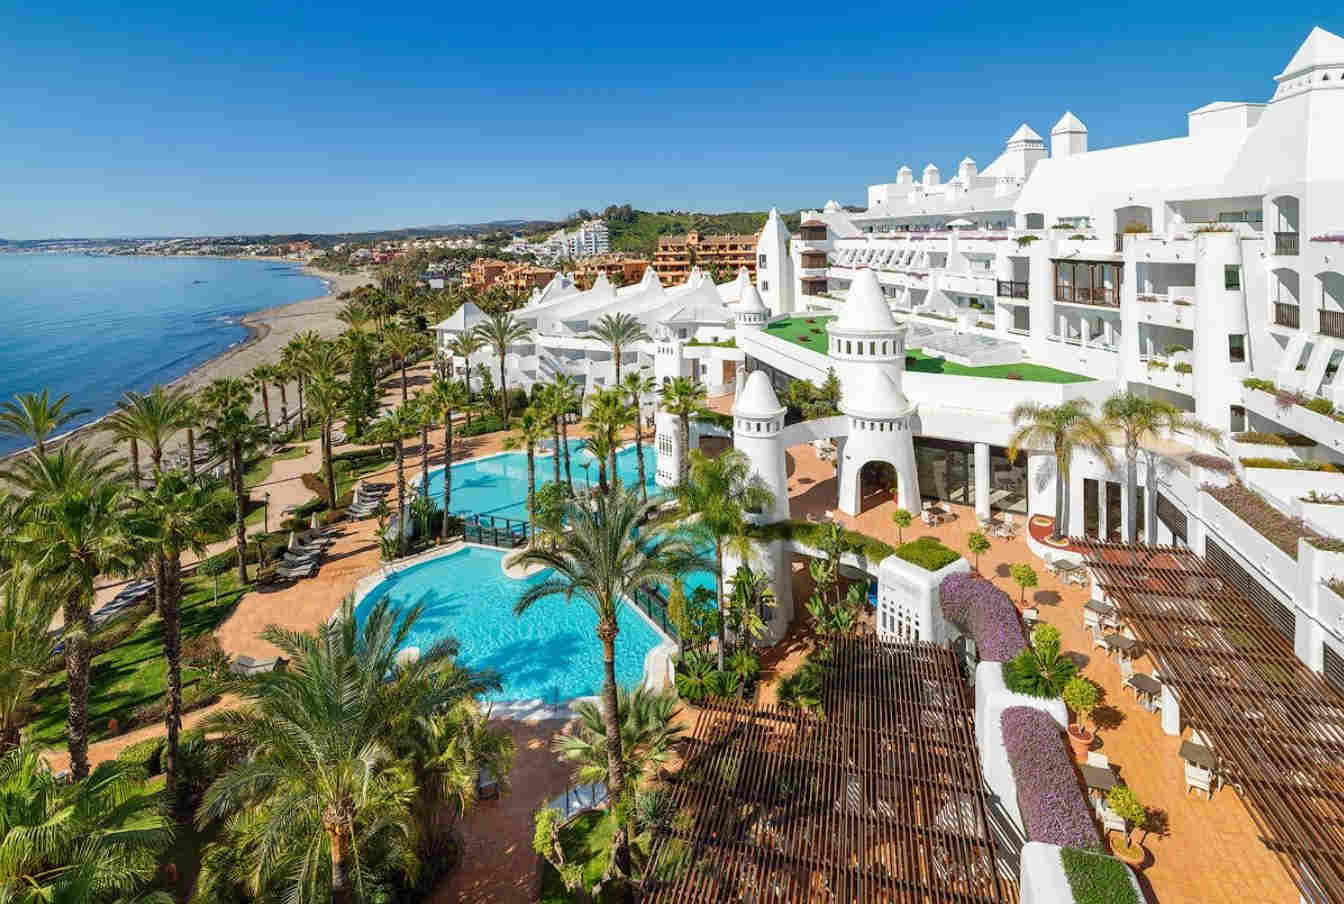 Disabled Holidays - H10 Estepona Palace, Estepona, Costa Del Sol, Spain